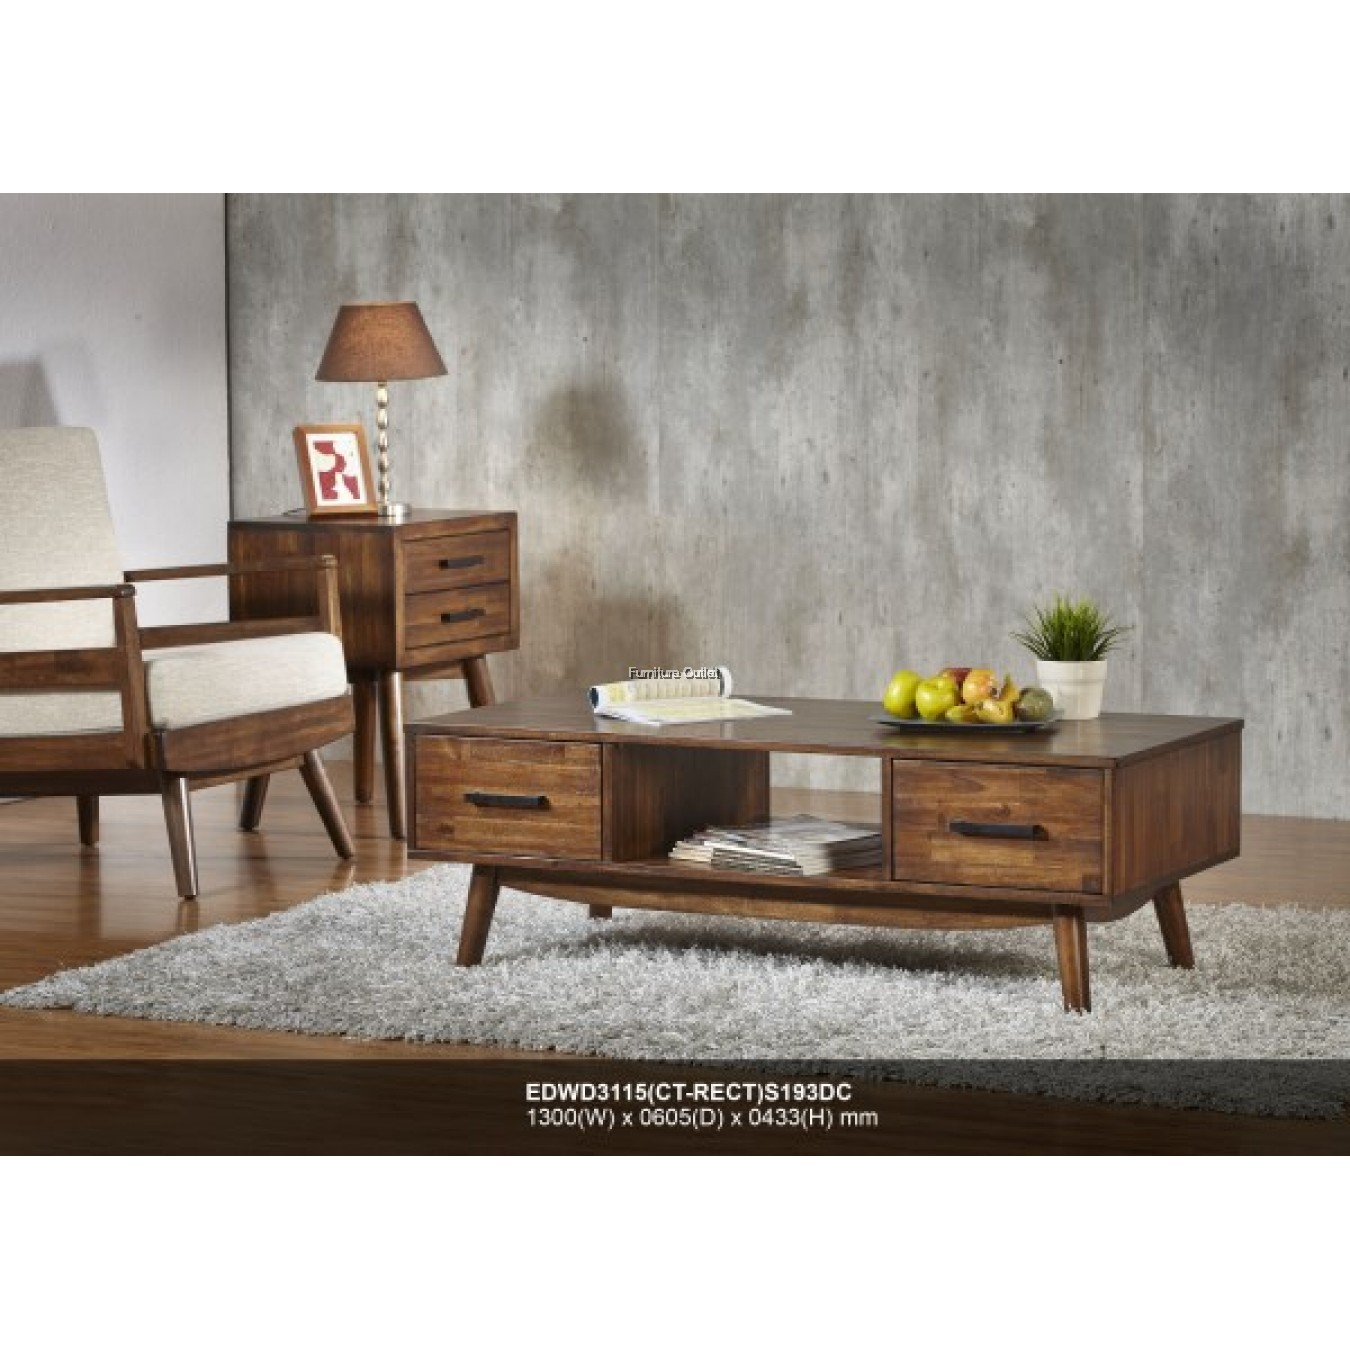 (EDWD3115) AMAZON SERIES 3115 COFFEE TABLE